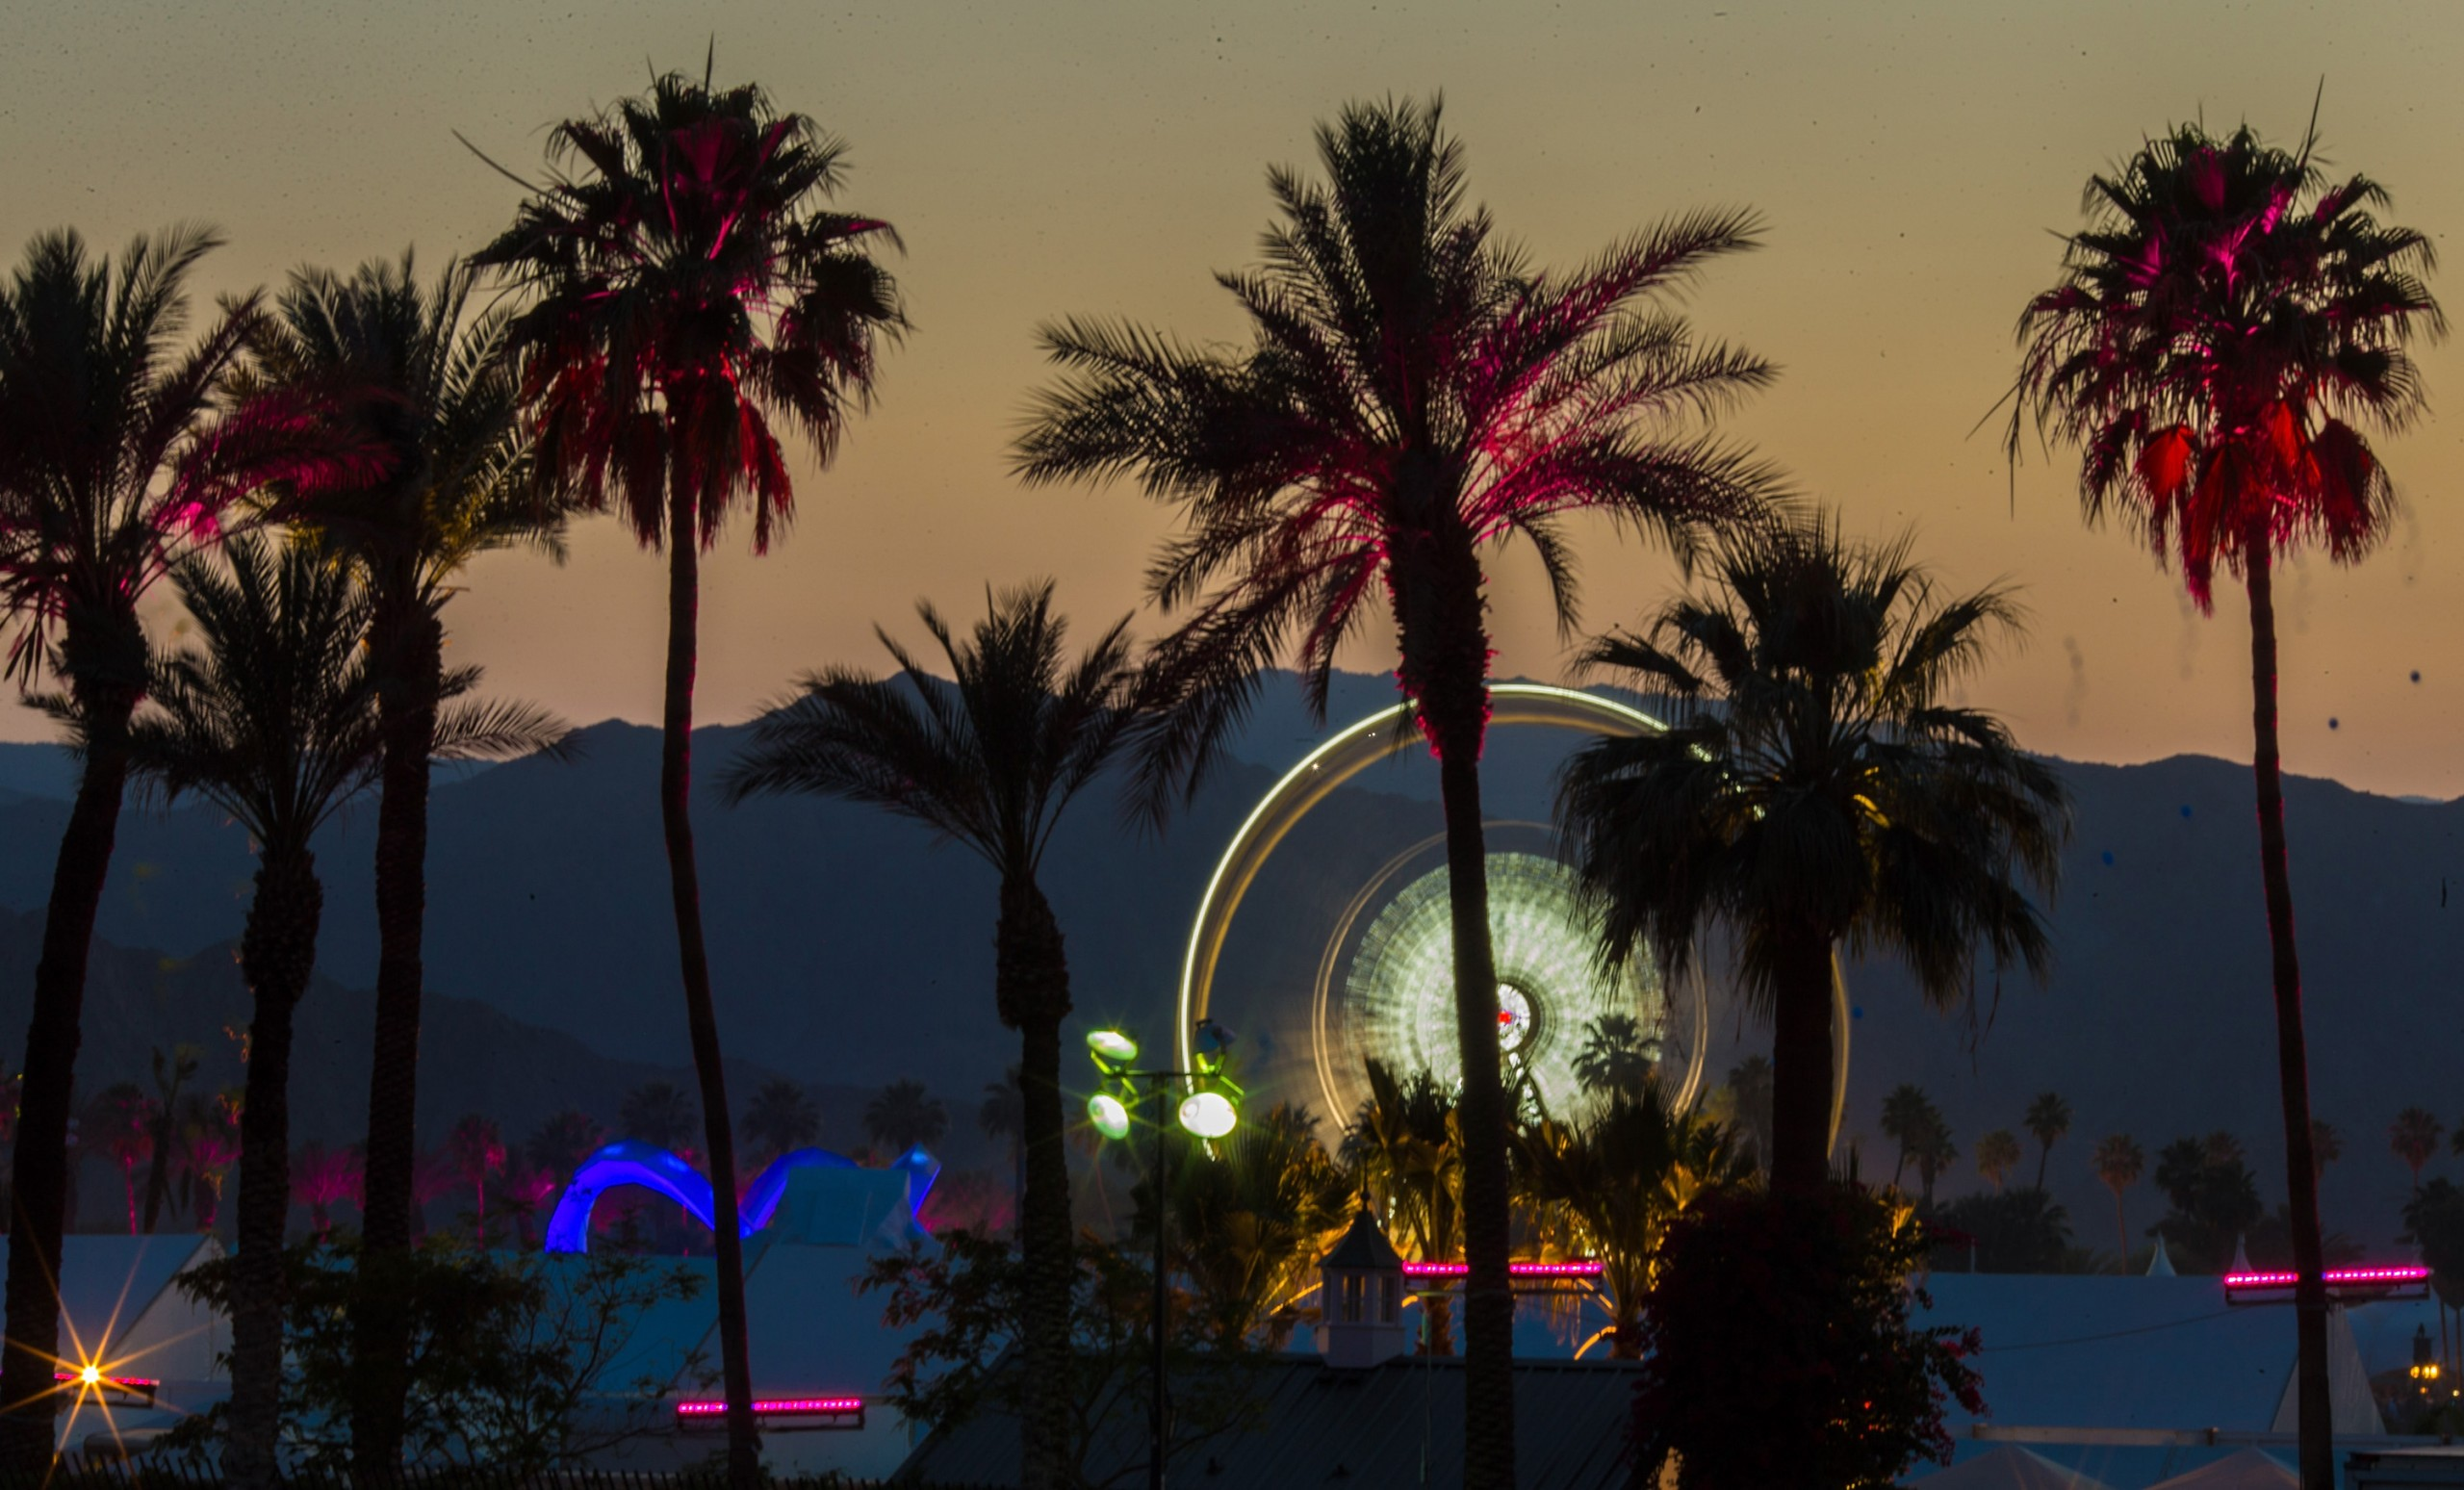 Conquer Coachella Beauty this Weekend